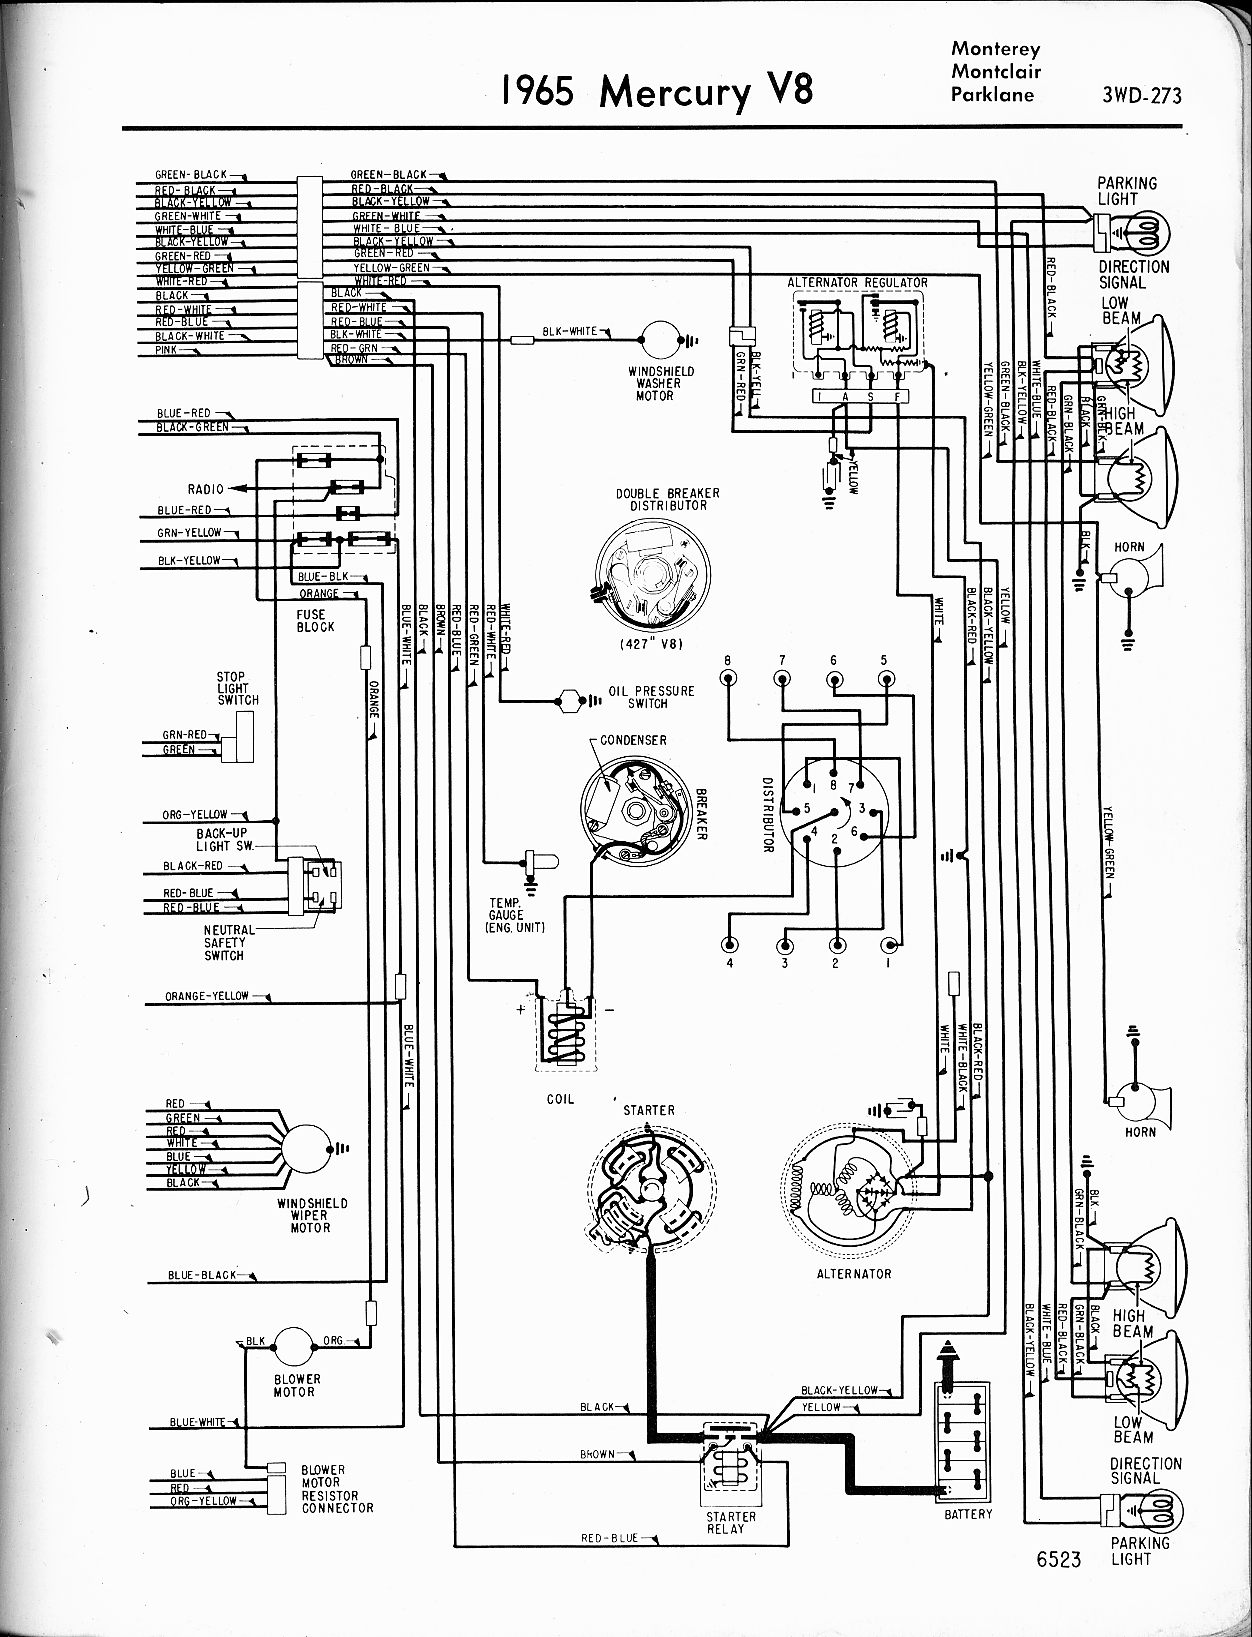 MWire5765 273 mercury wiring diagrams the old car manual project 67 cougar turn signal wiring diagram at eliteediting.co